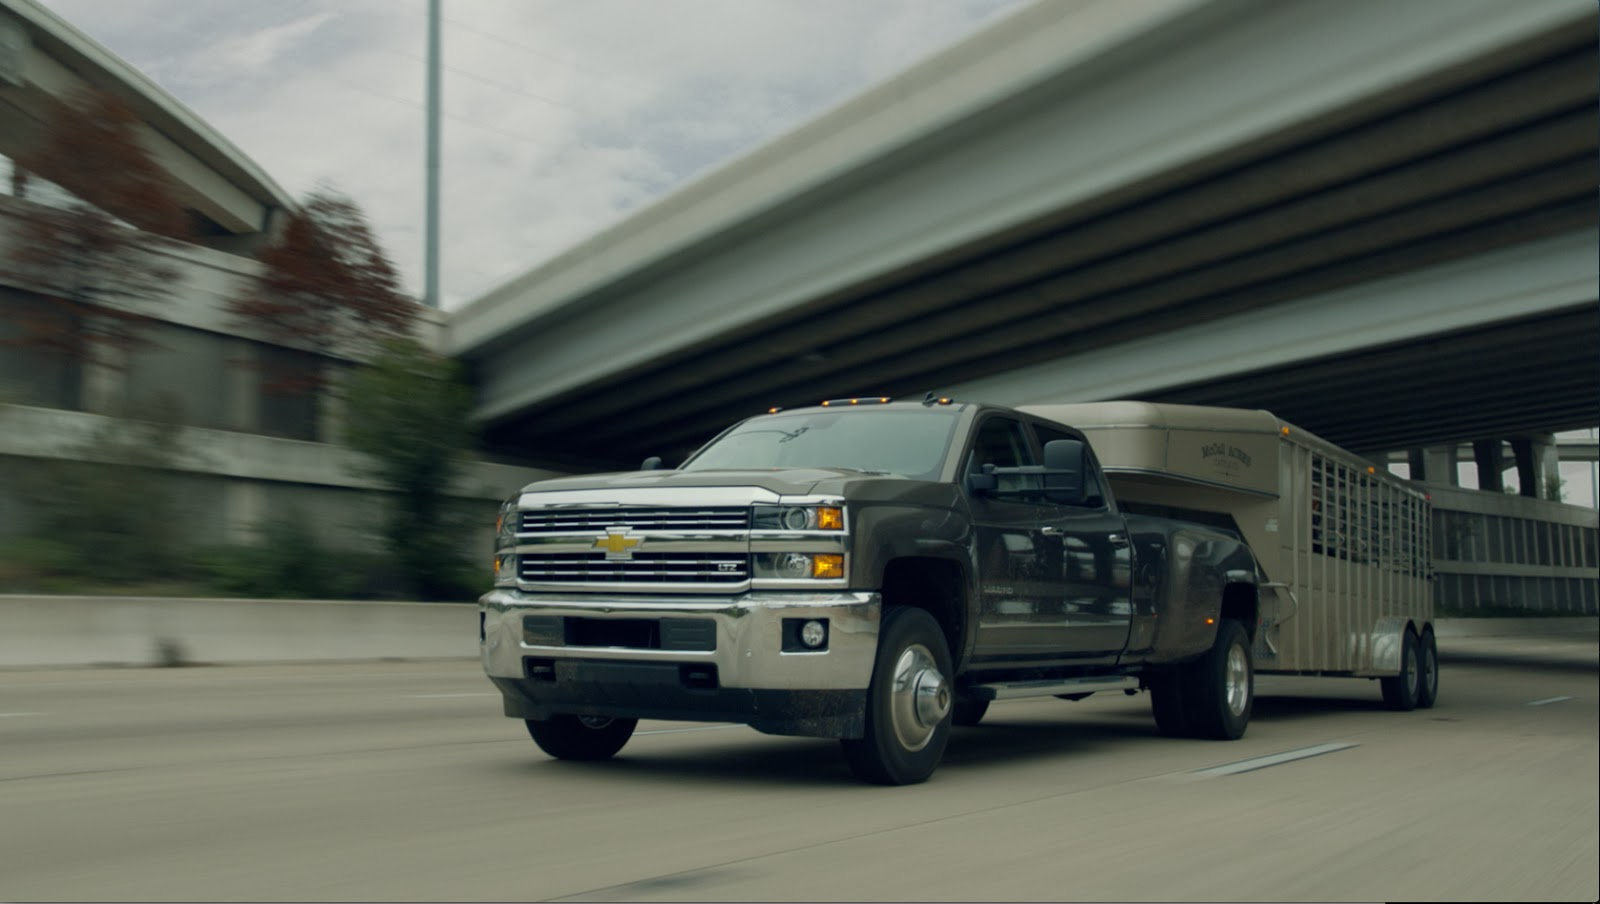 Chevrolet's Super Bowl Announcement